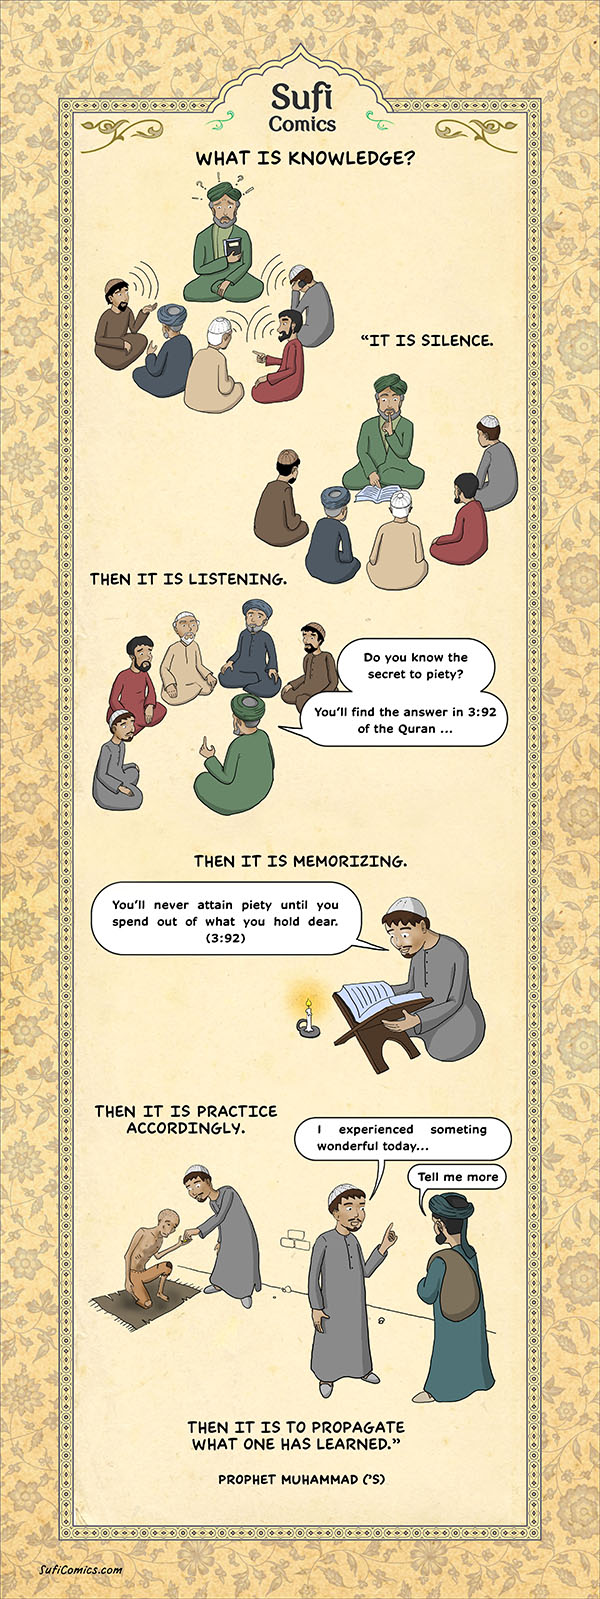 sufi-comics-what-is-knowledge